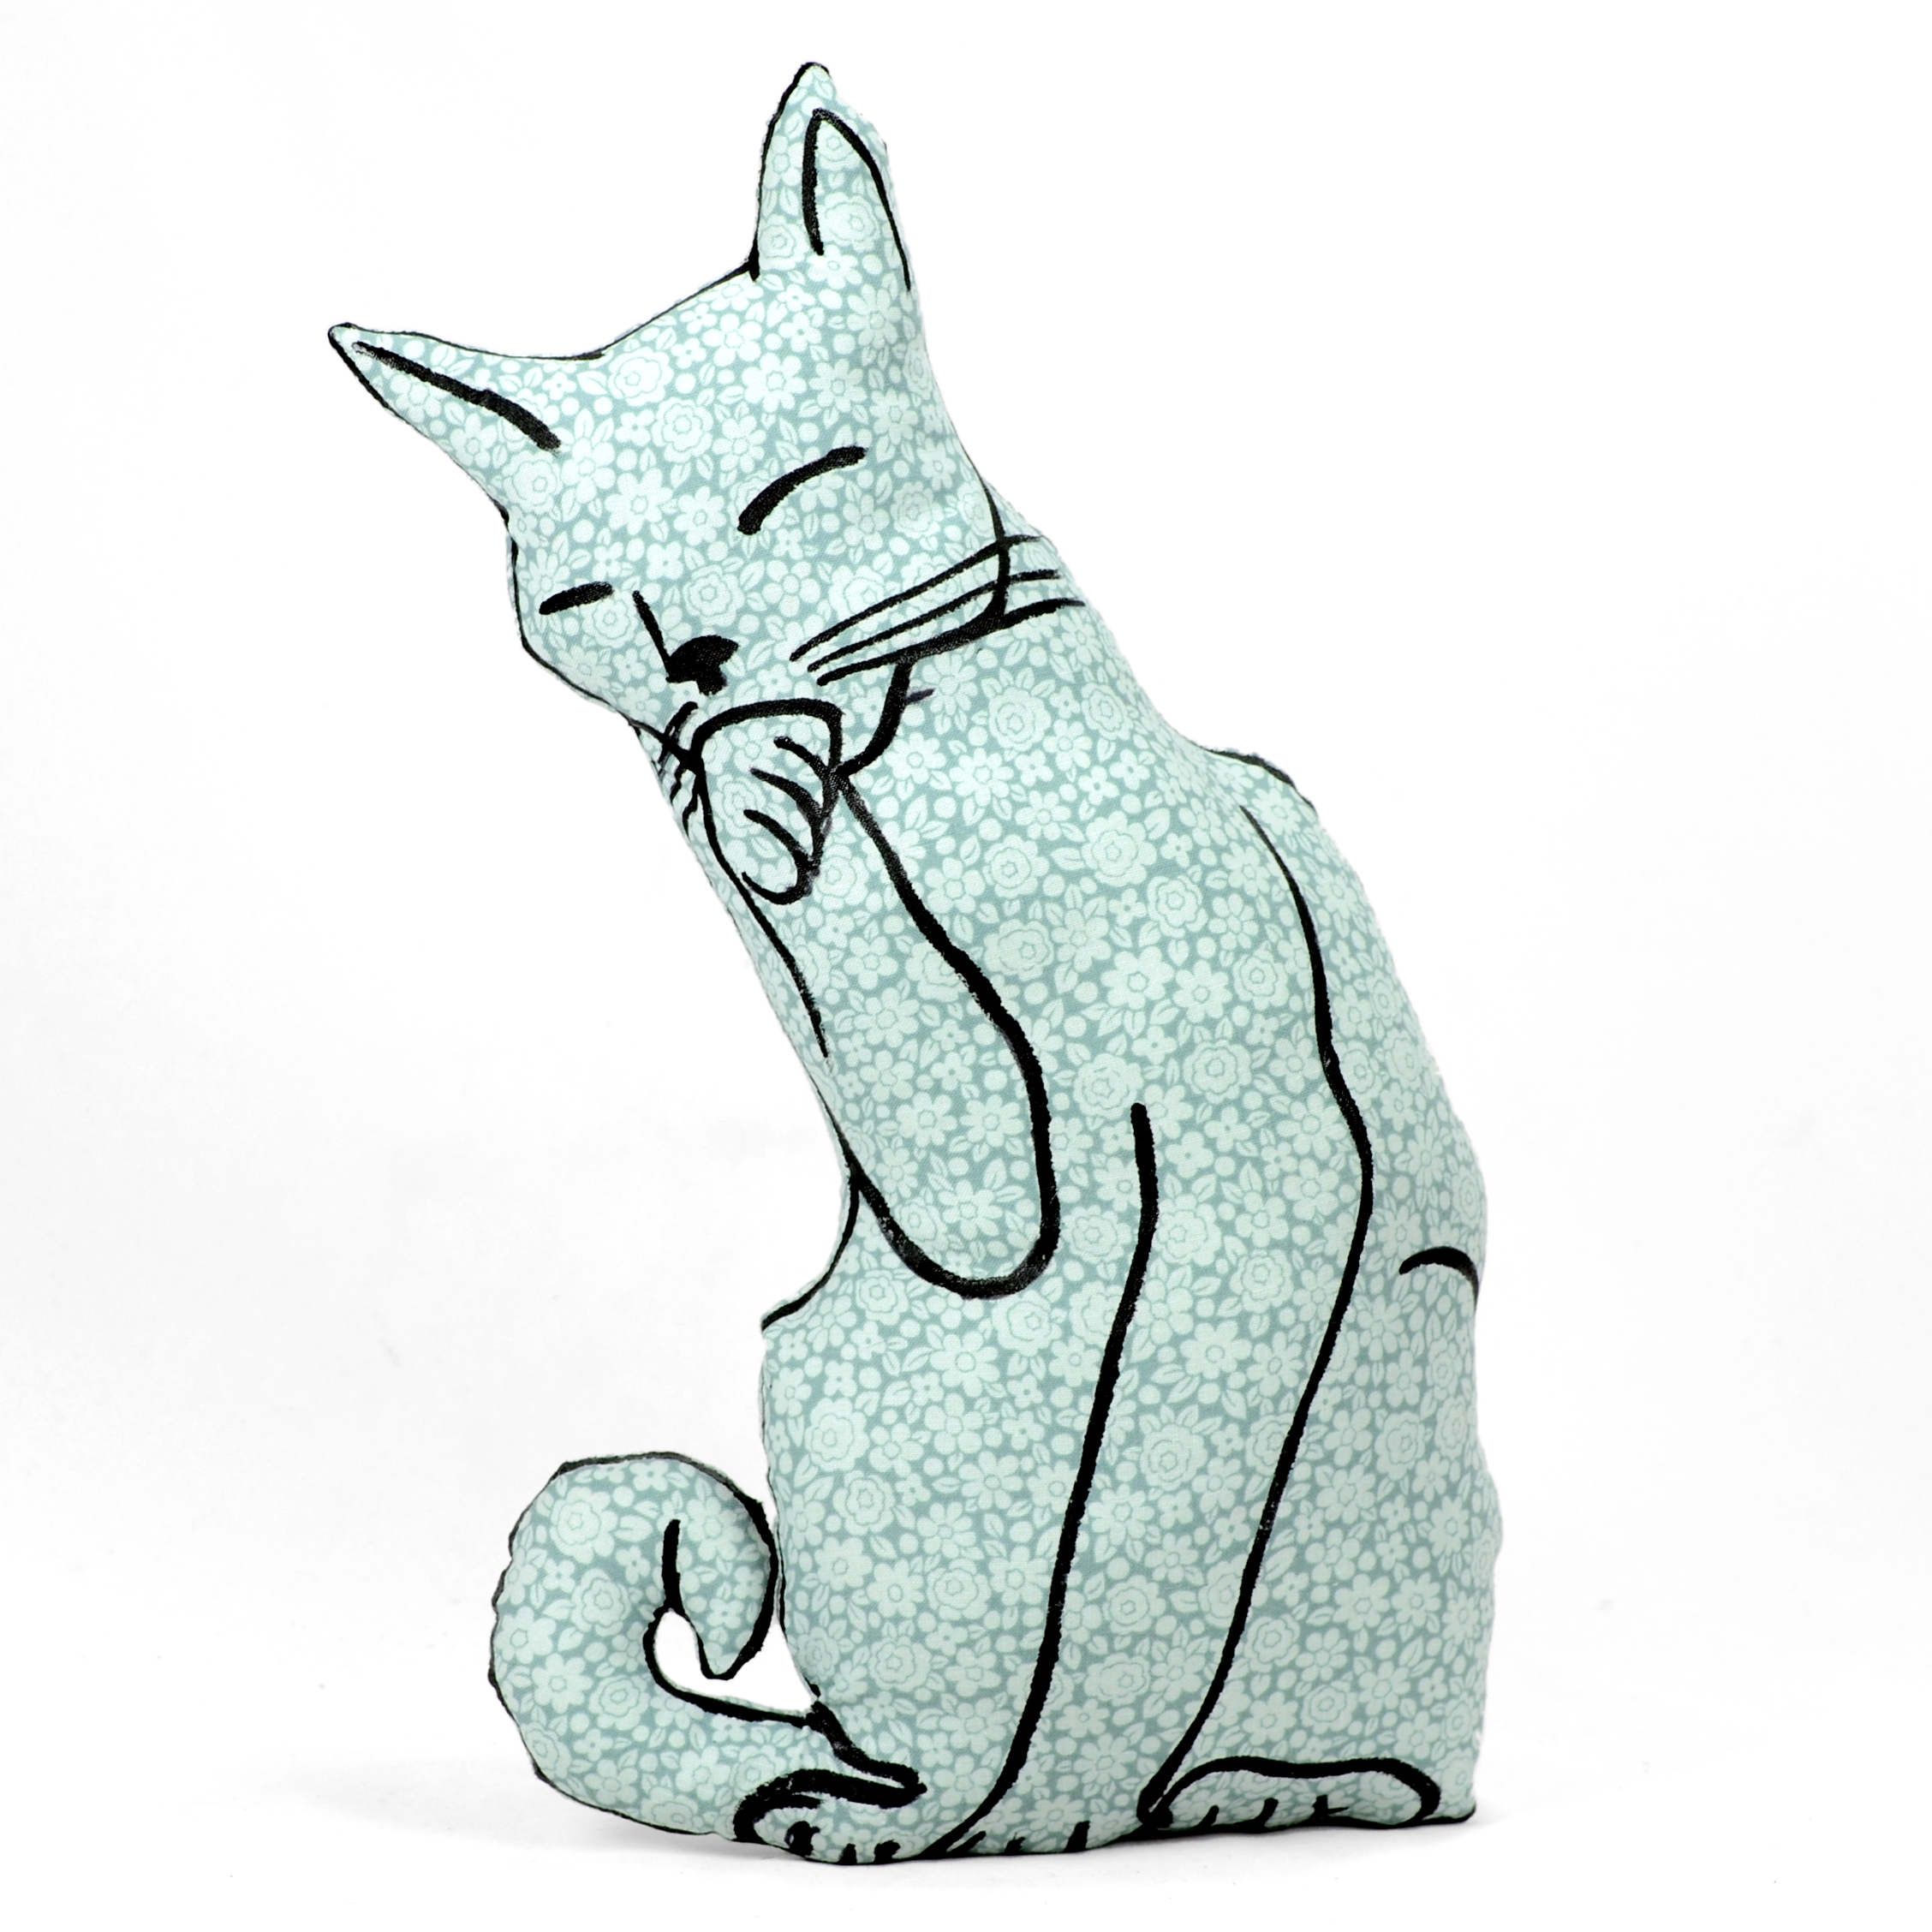 Hand drawn cat licking paw shaped pillow.